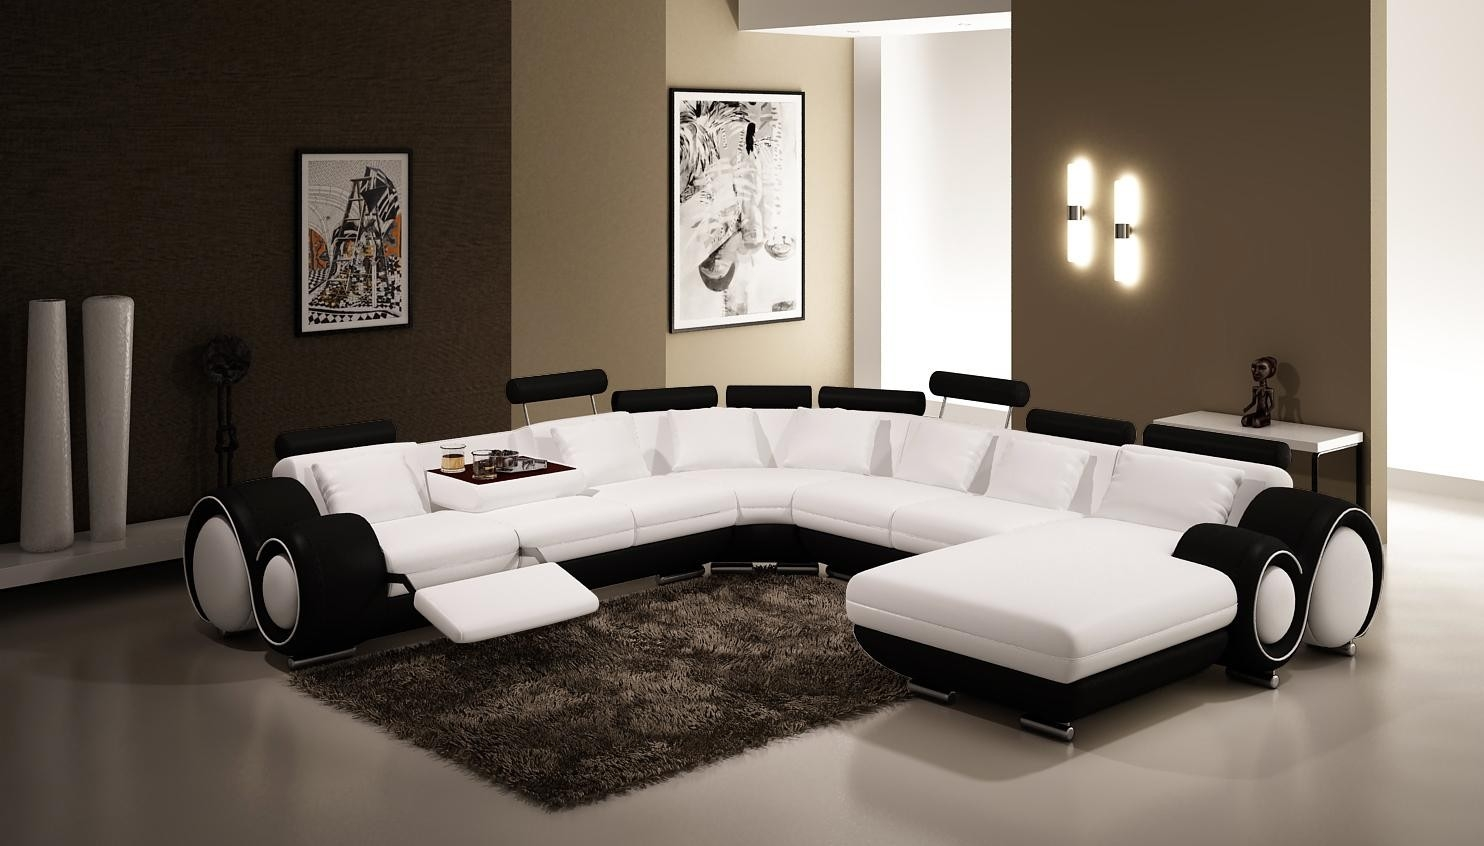 Vig Furniture 4084 Contemporary Black And White Leather Sectional Sofa Inside Black And White Sectional Sofa (View 3 of 12)